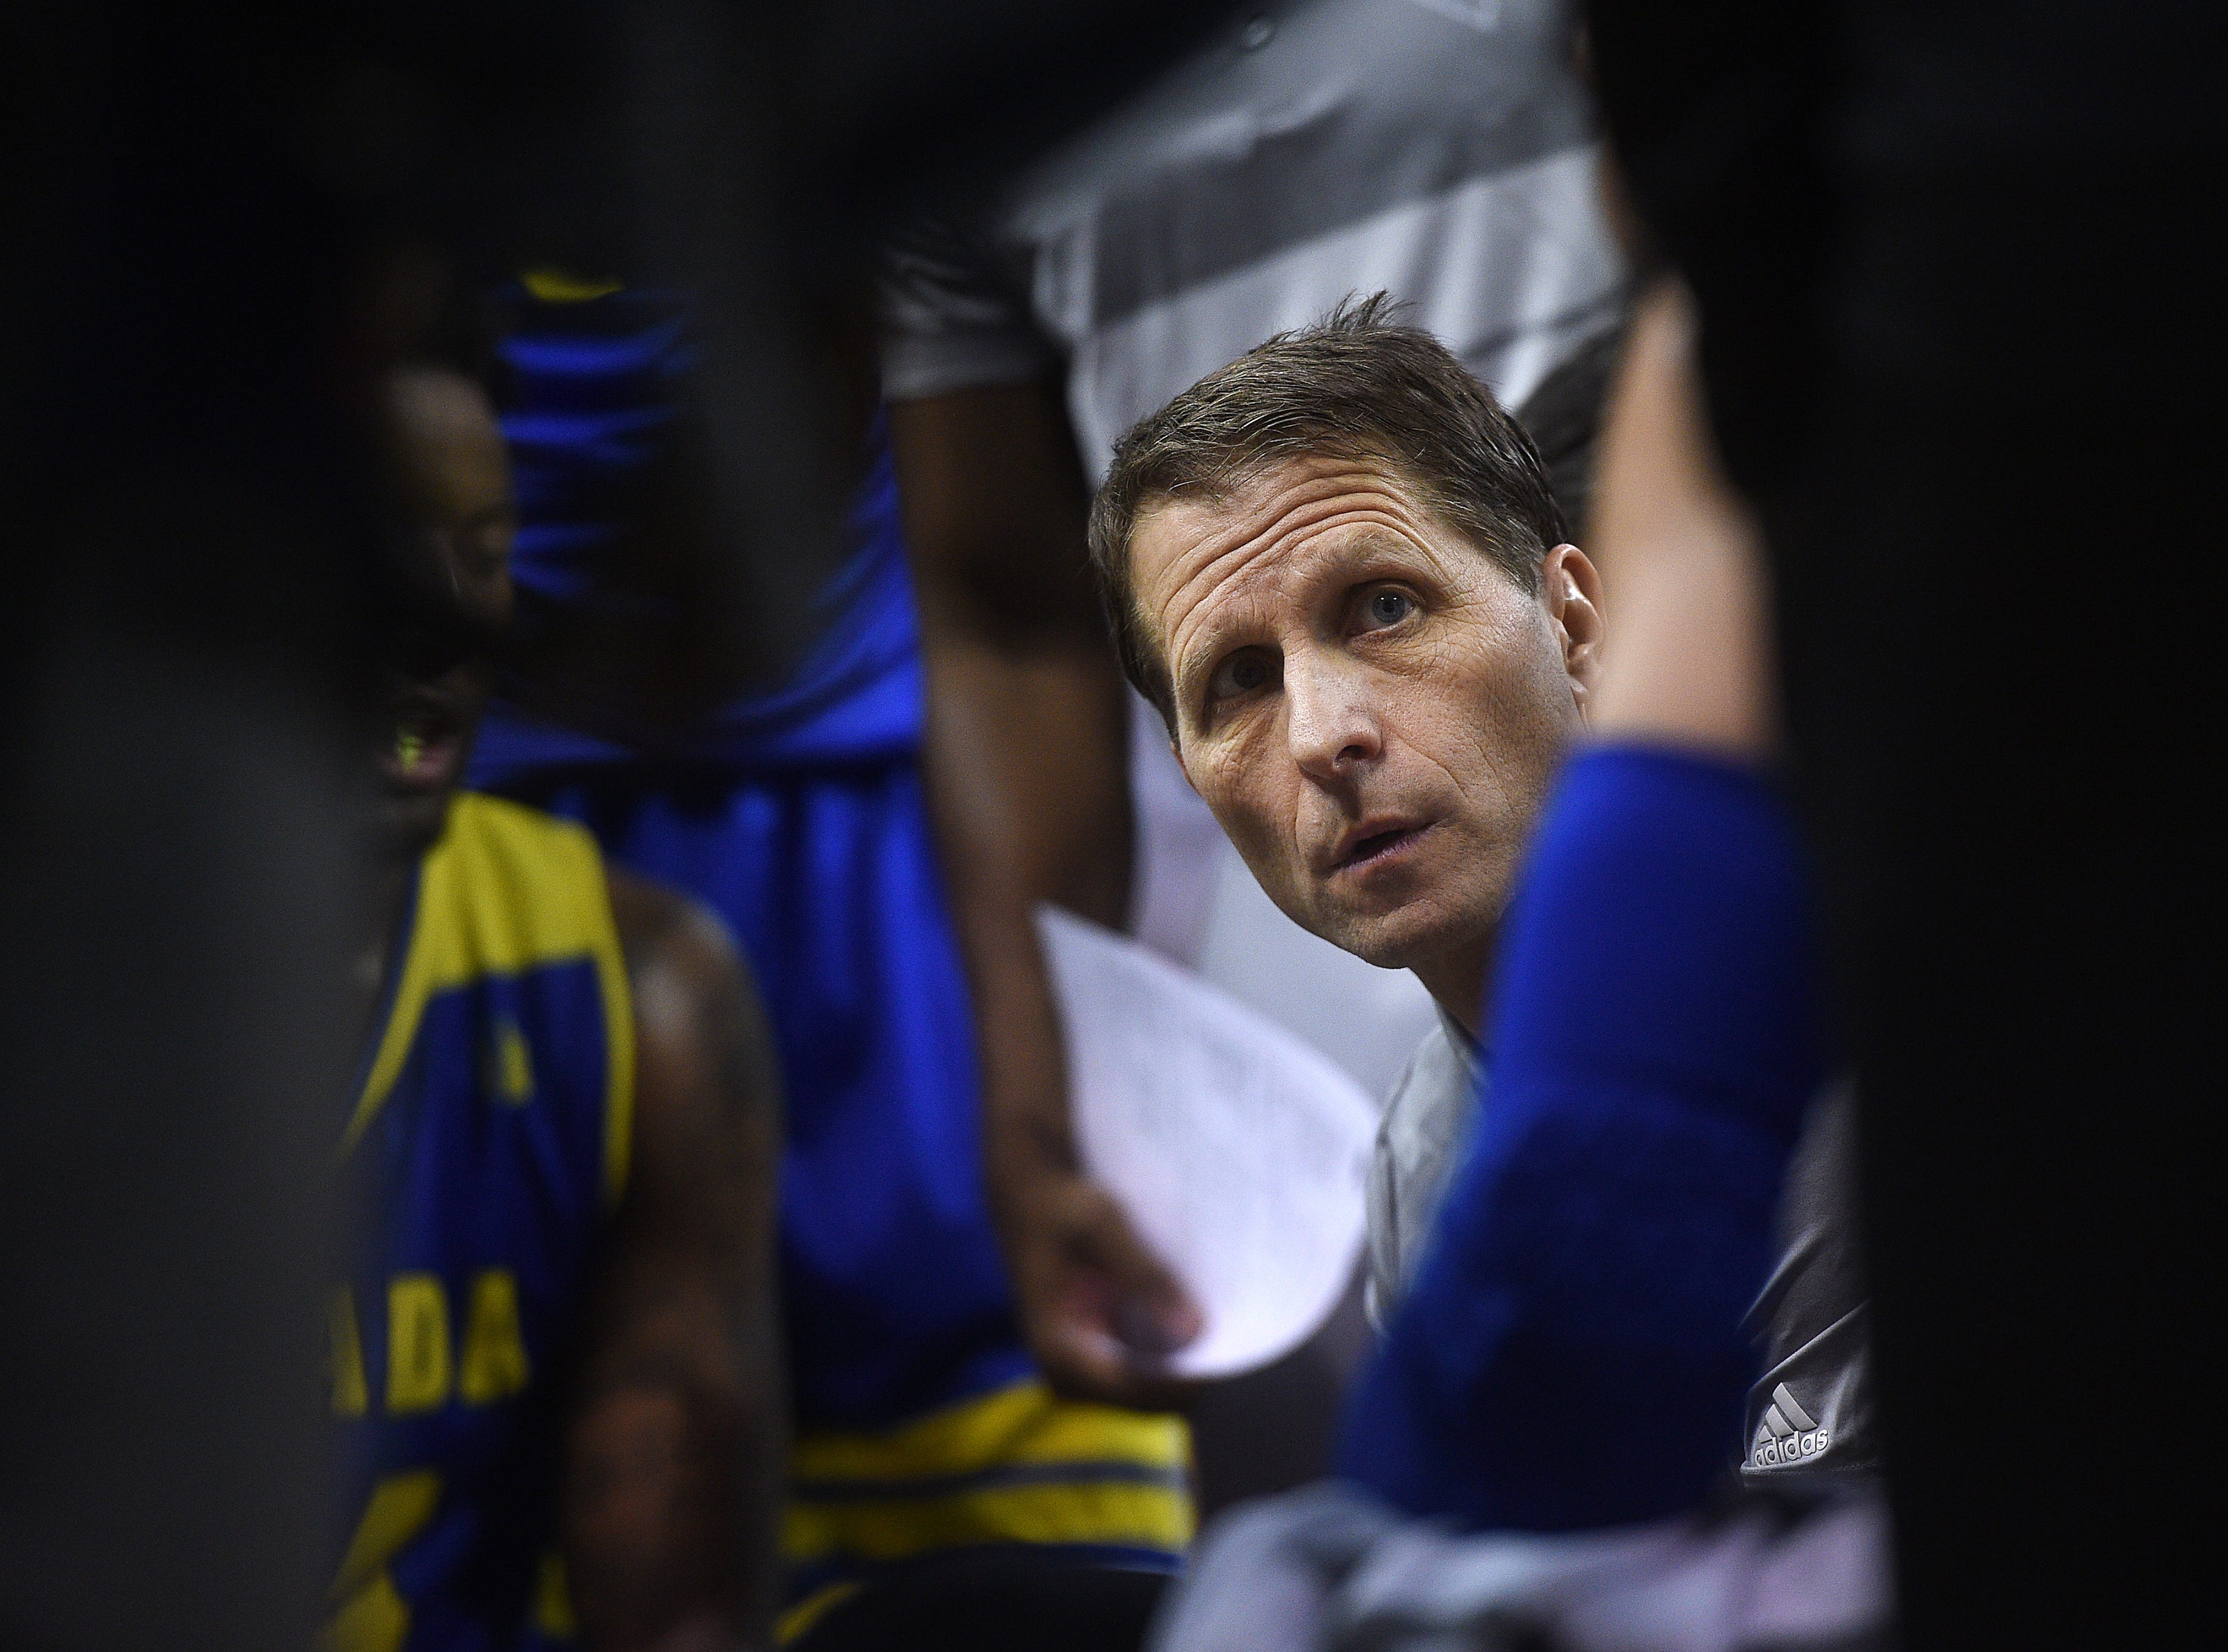 Nevada head coach Eric Musselman conducts a time out while taking on UNLV during their basketball game at Lawlor Events Center in Reno on Feb. 27, 2019.